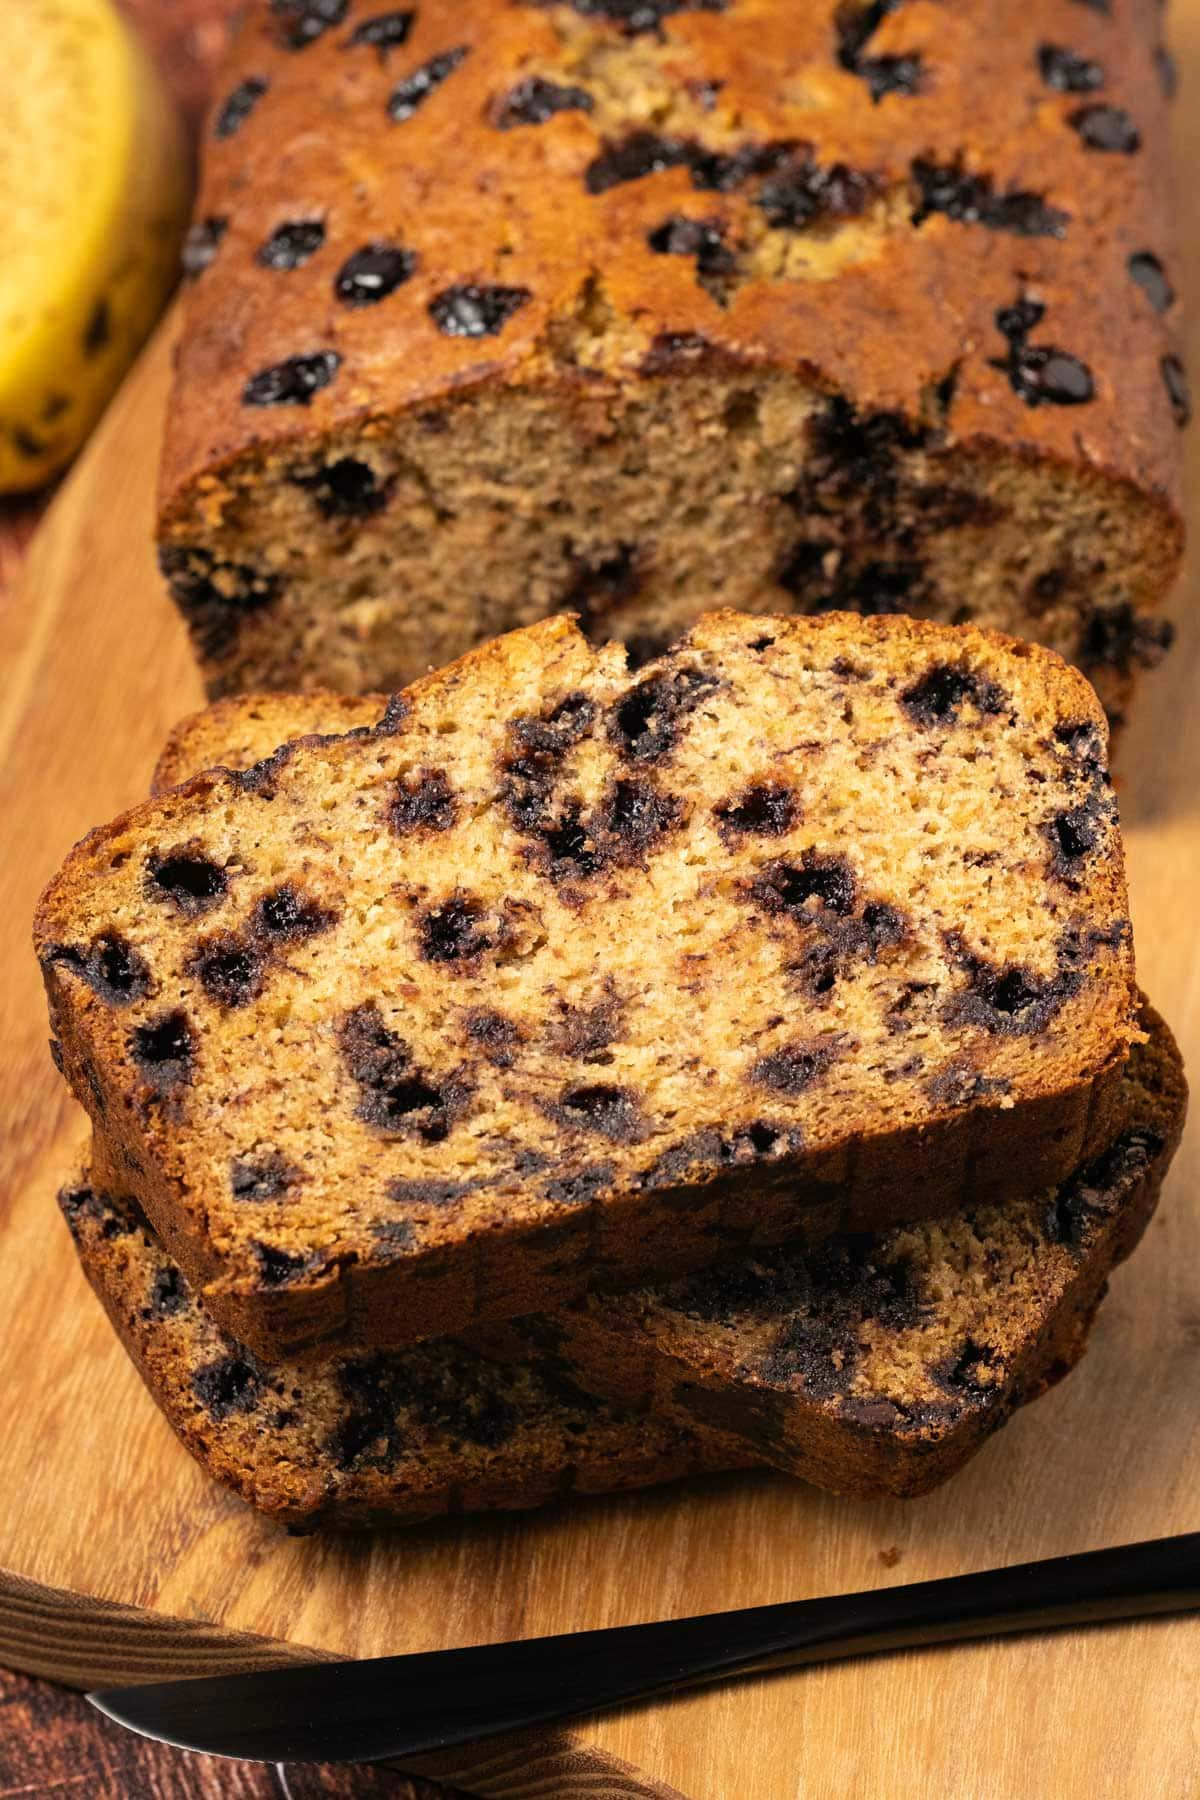 Slices of chocolate chip banana bread on a wooden board.